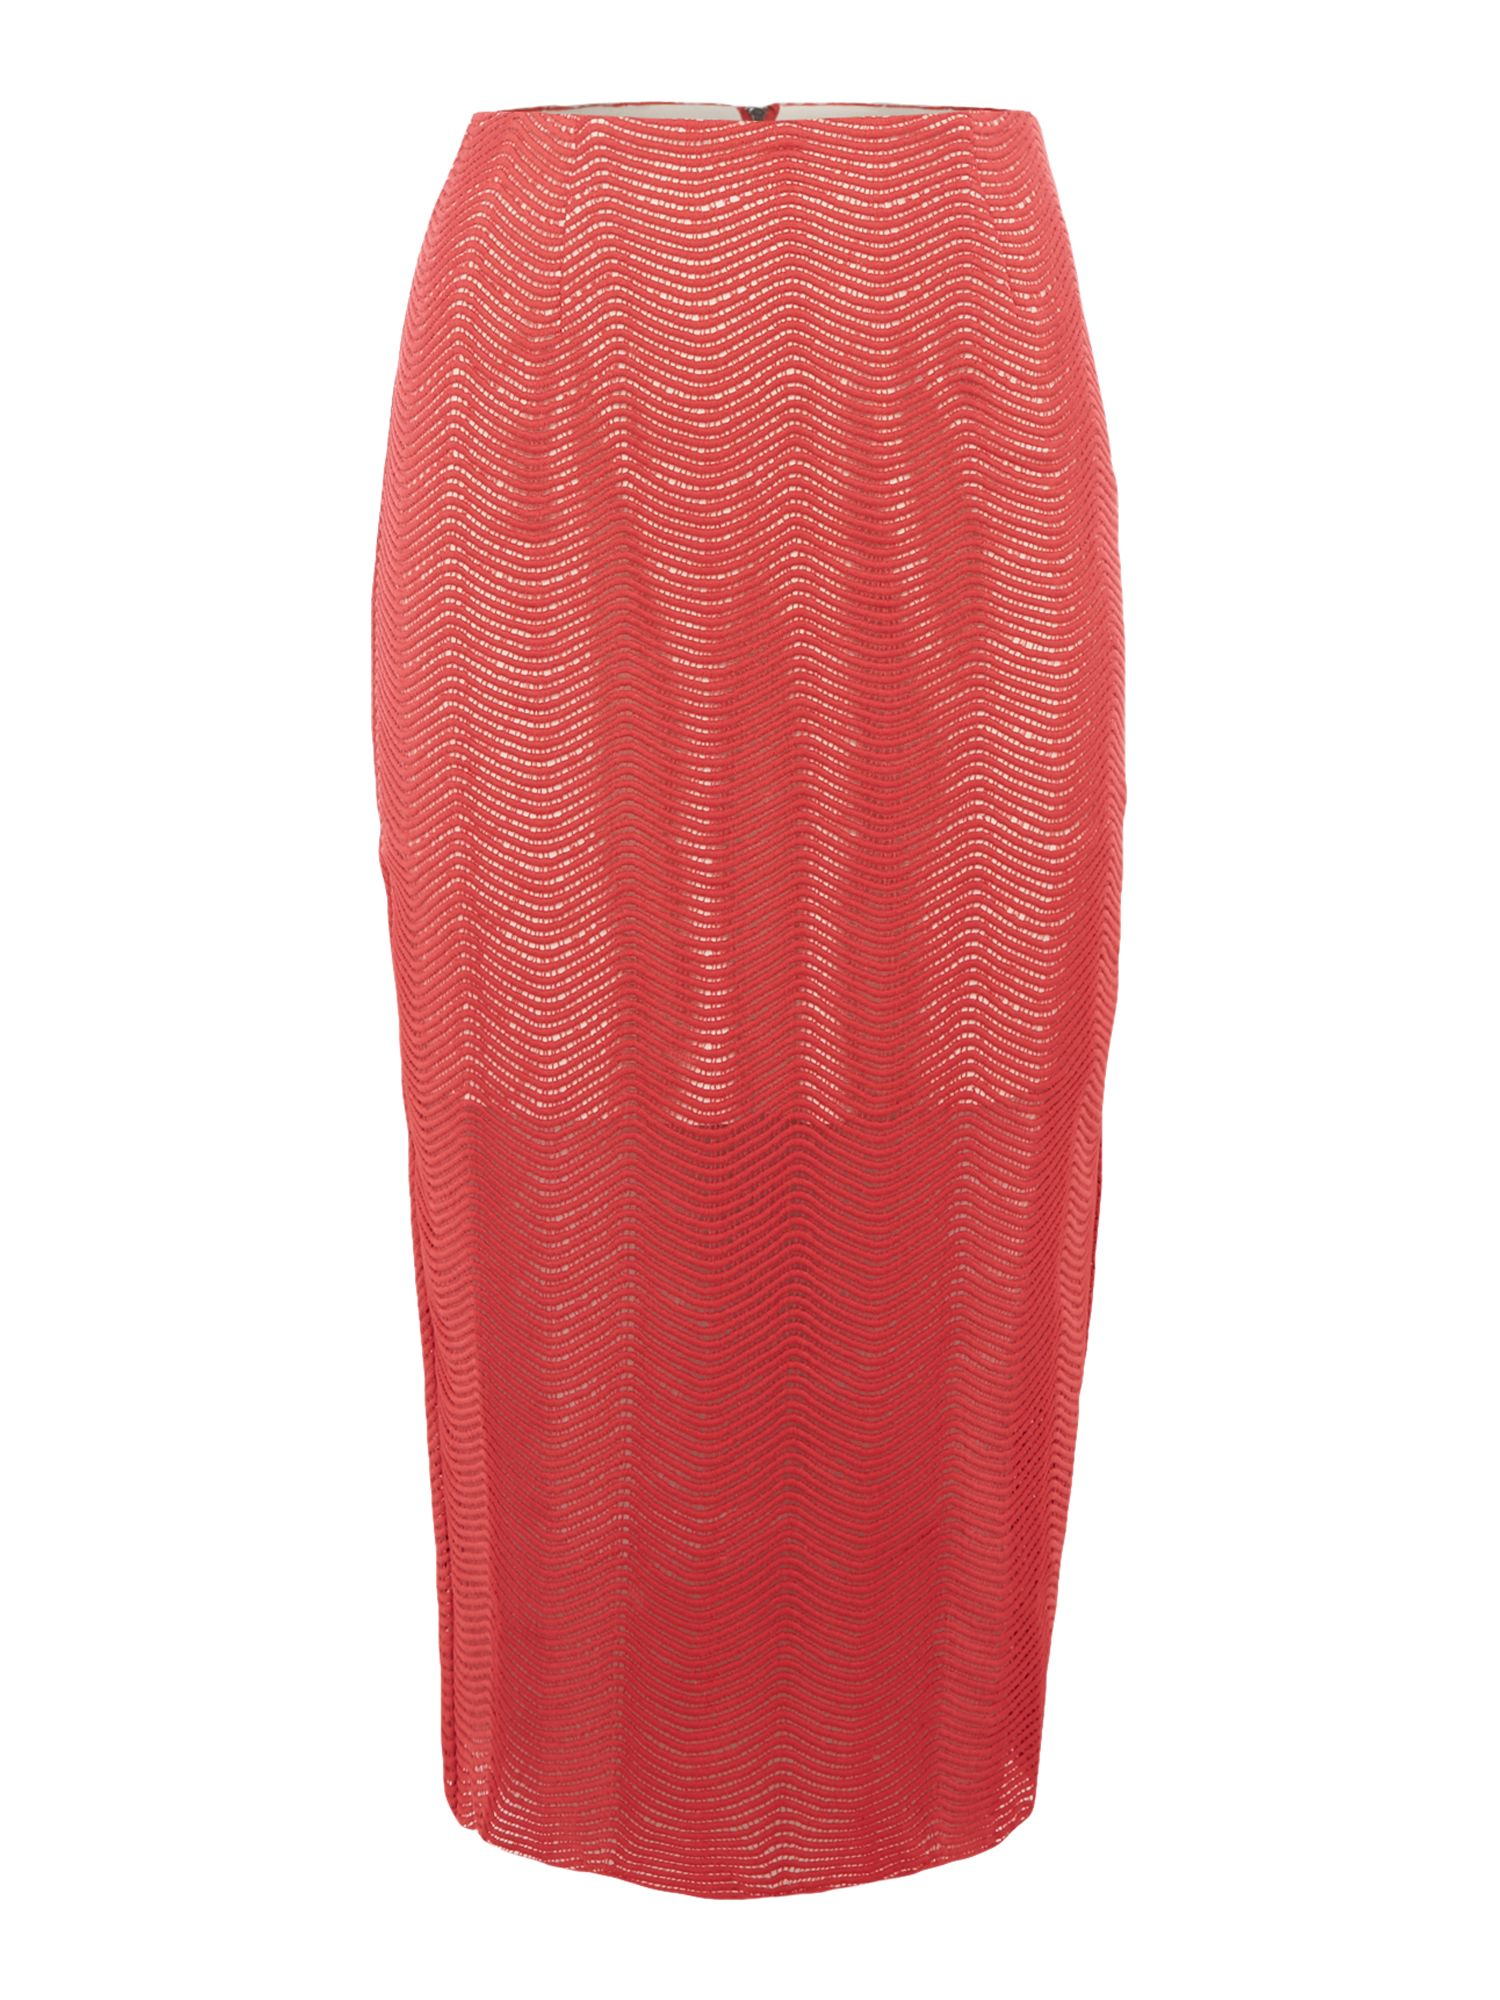 Keepsake Lace Pencil Skirt, Red